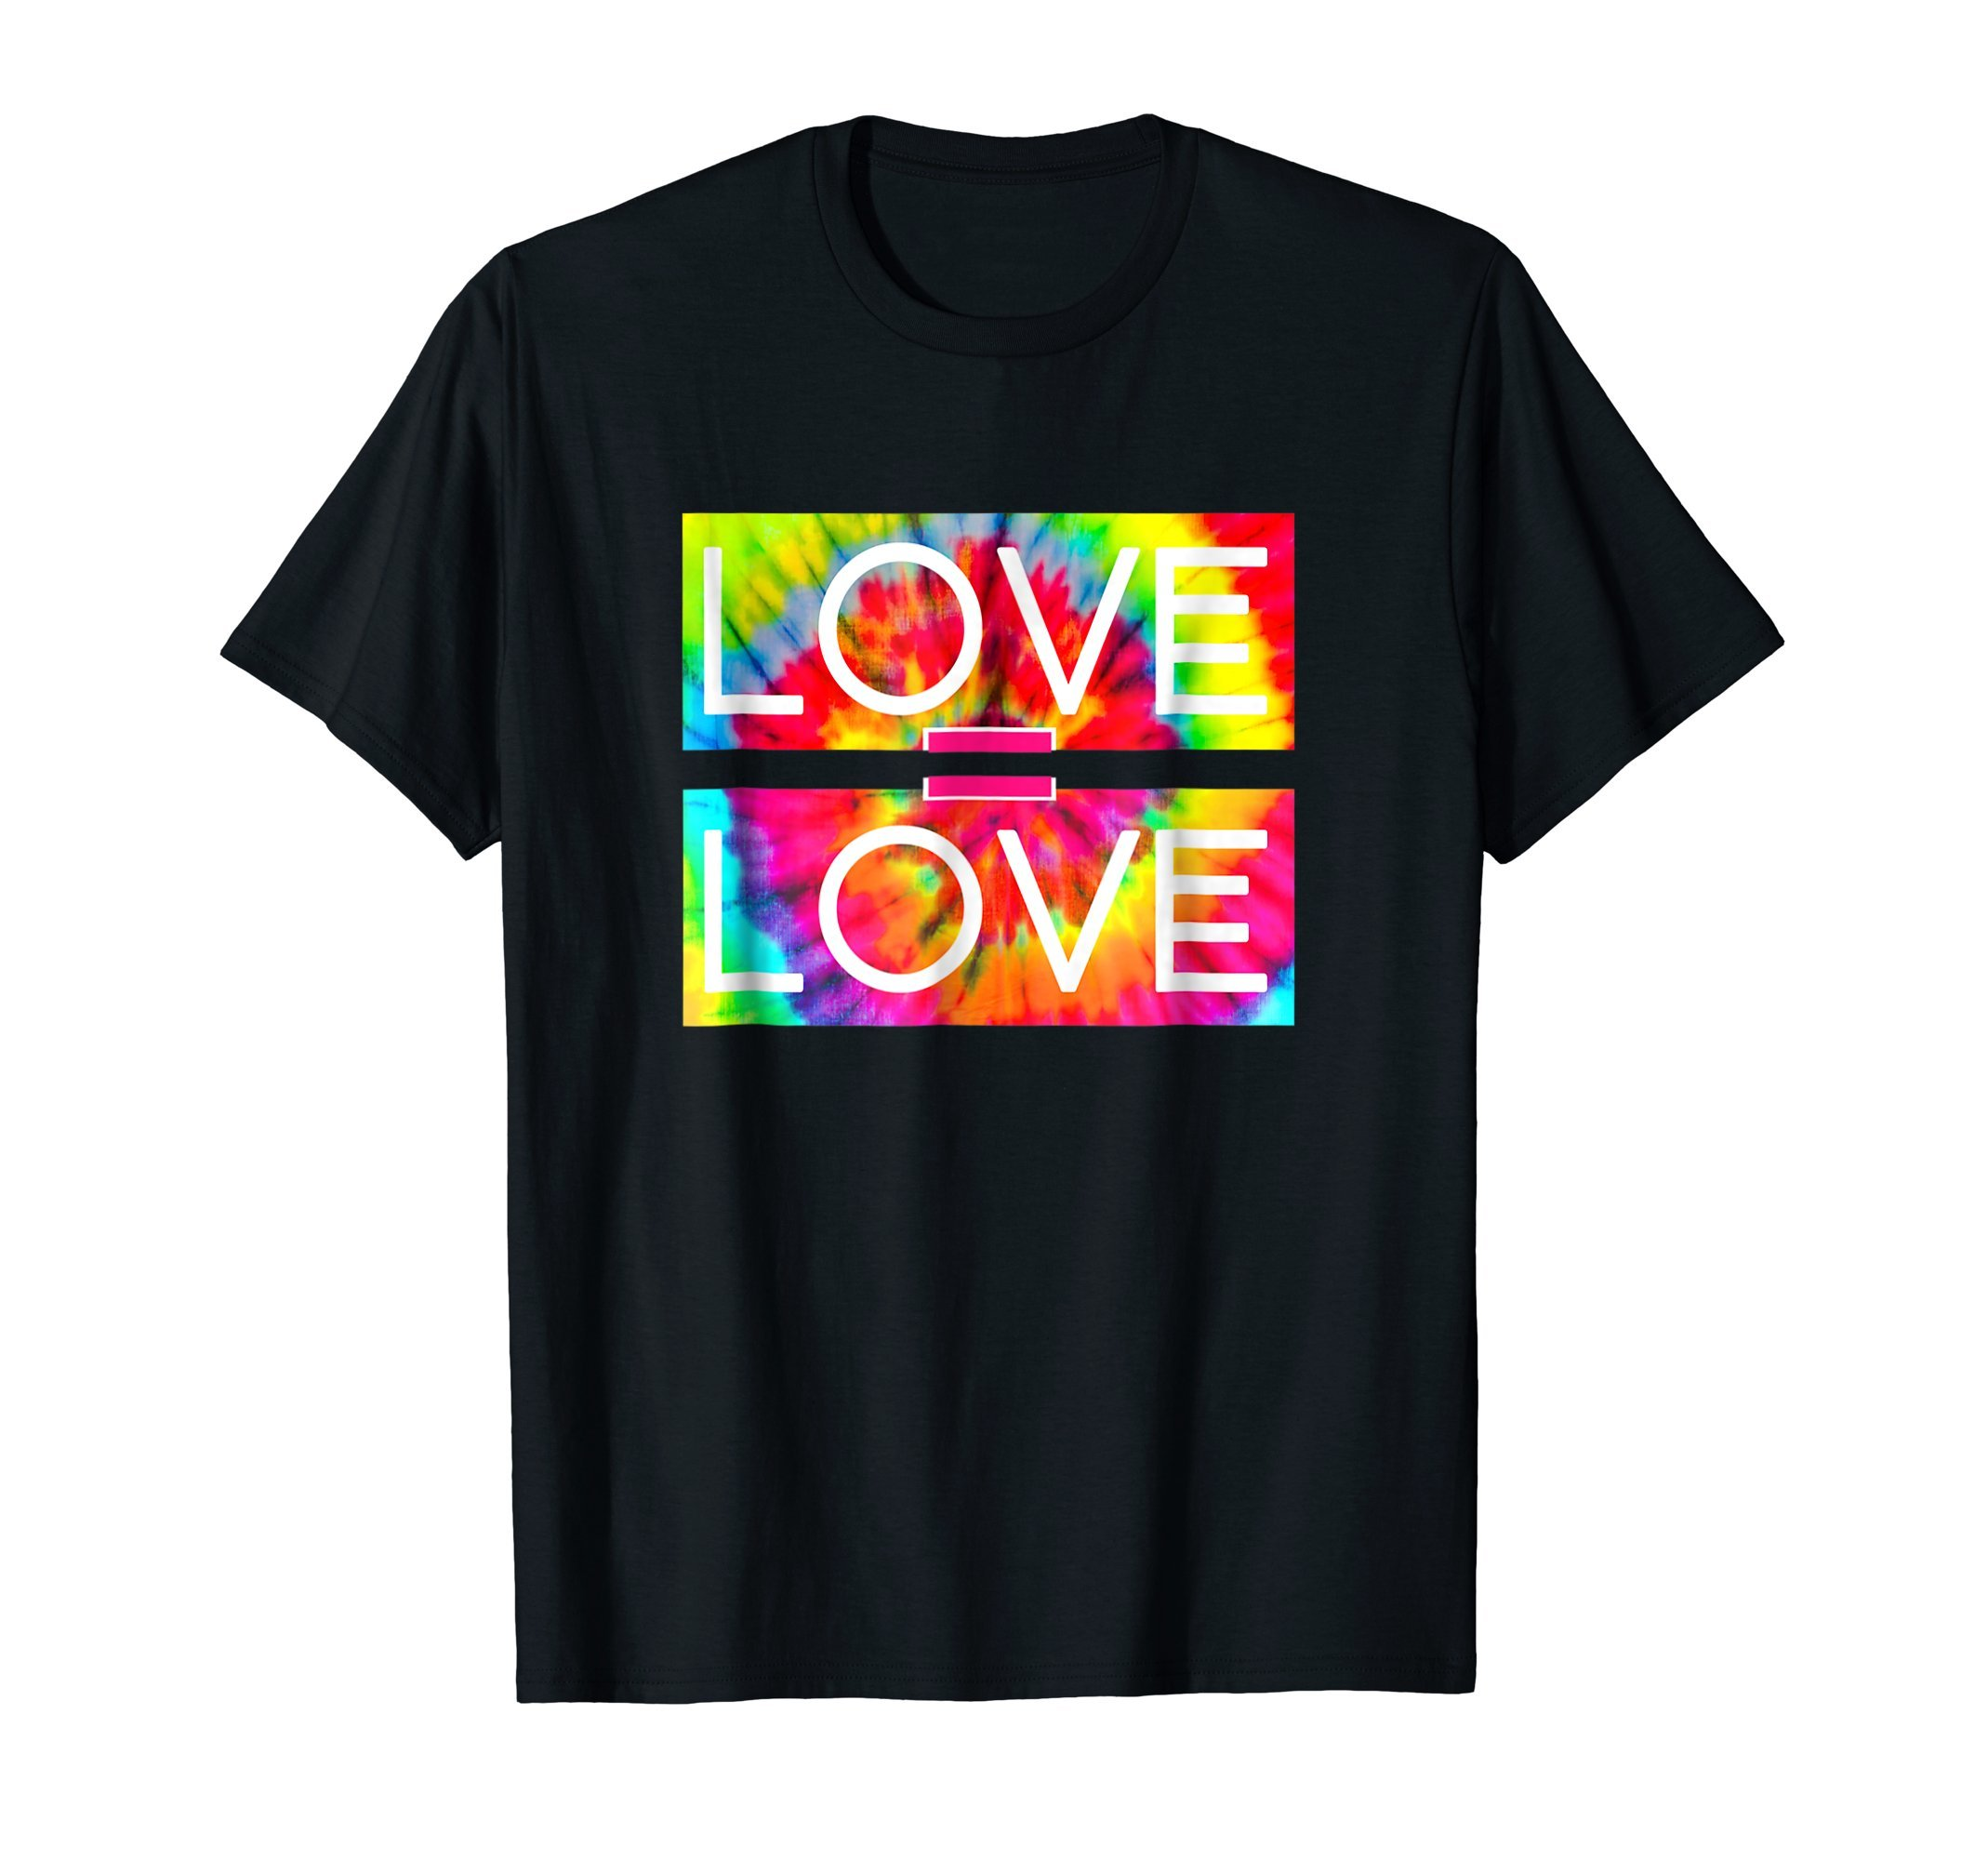 LOVE IS LOVE | LGBTQ 2018 PRIDE MARCH TIE DYE GIFT SHIRT